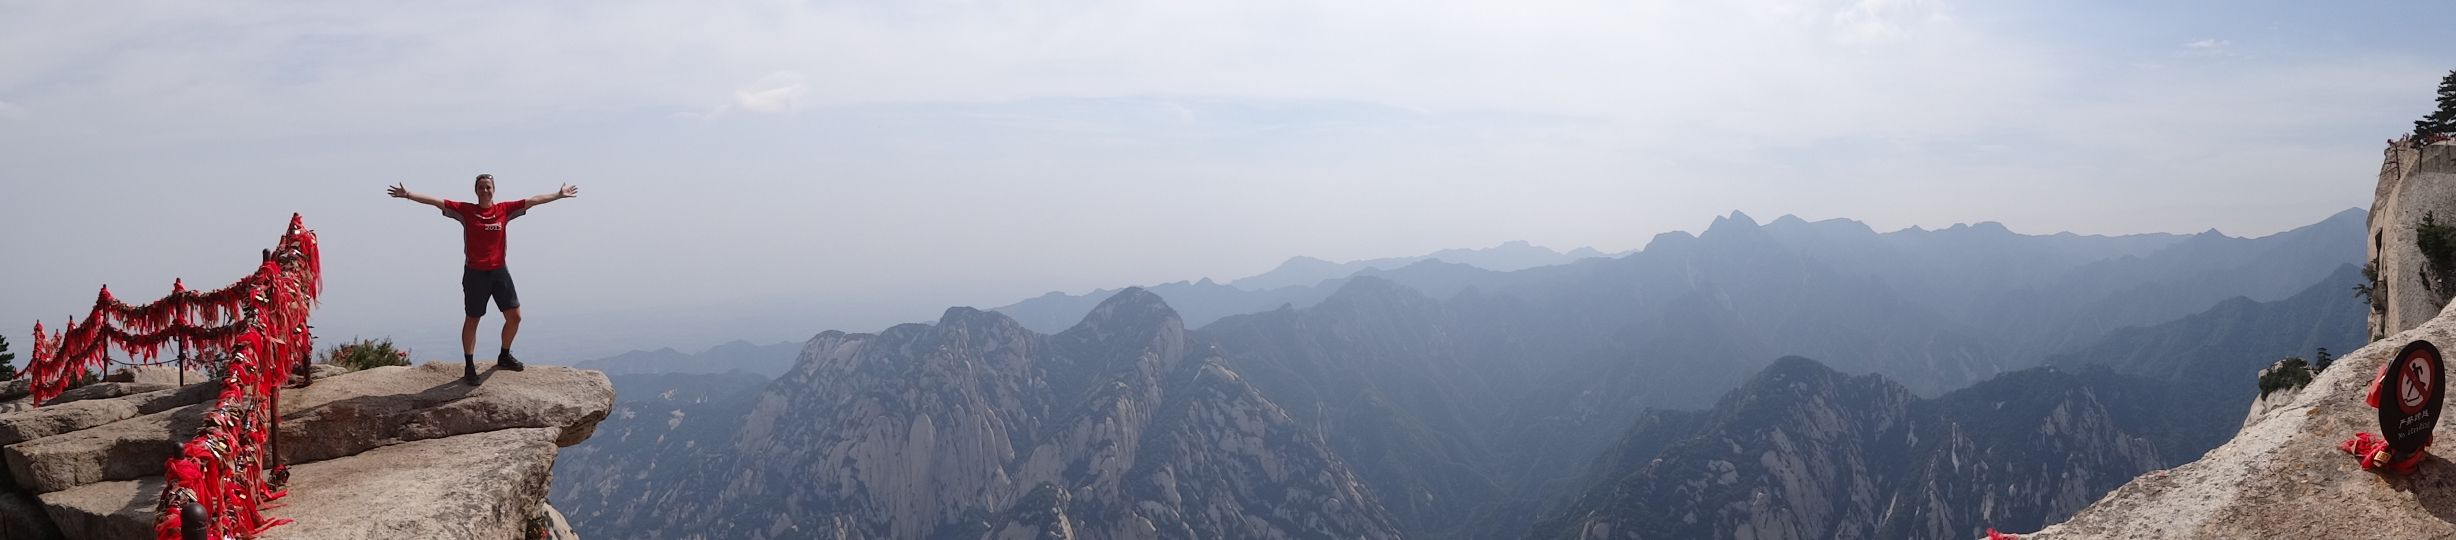 Mount Huashan - East Peak